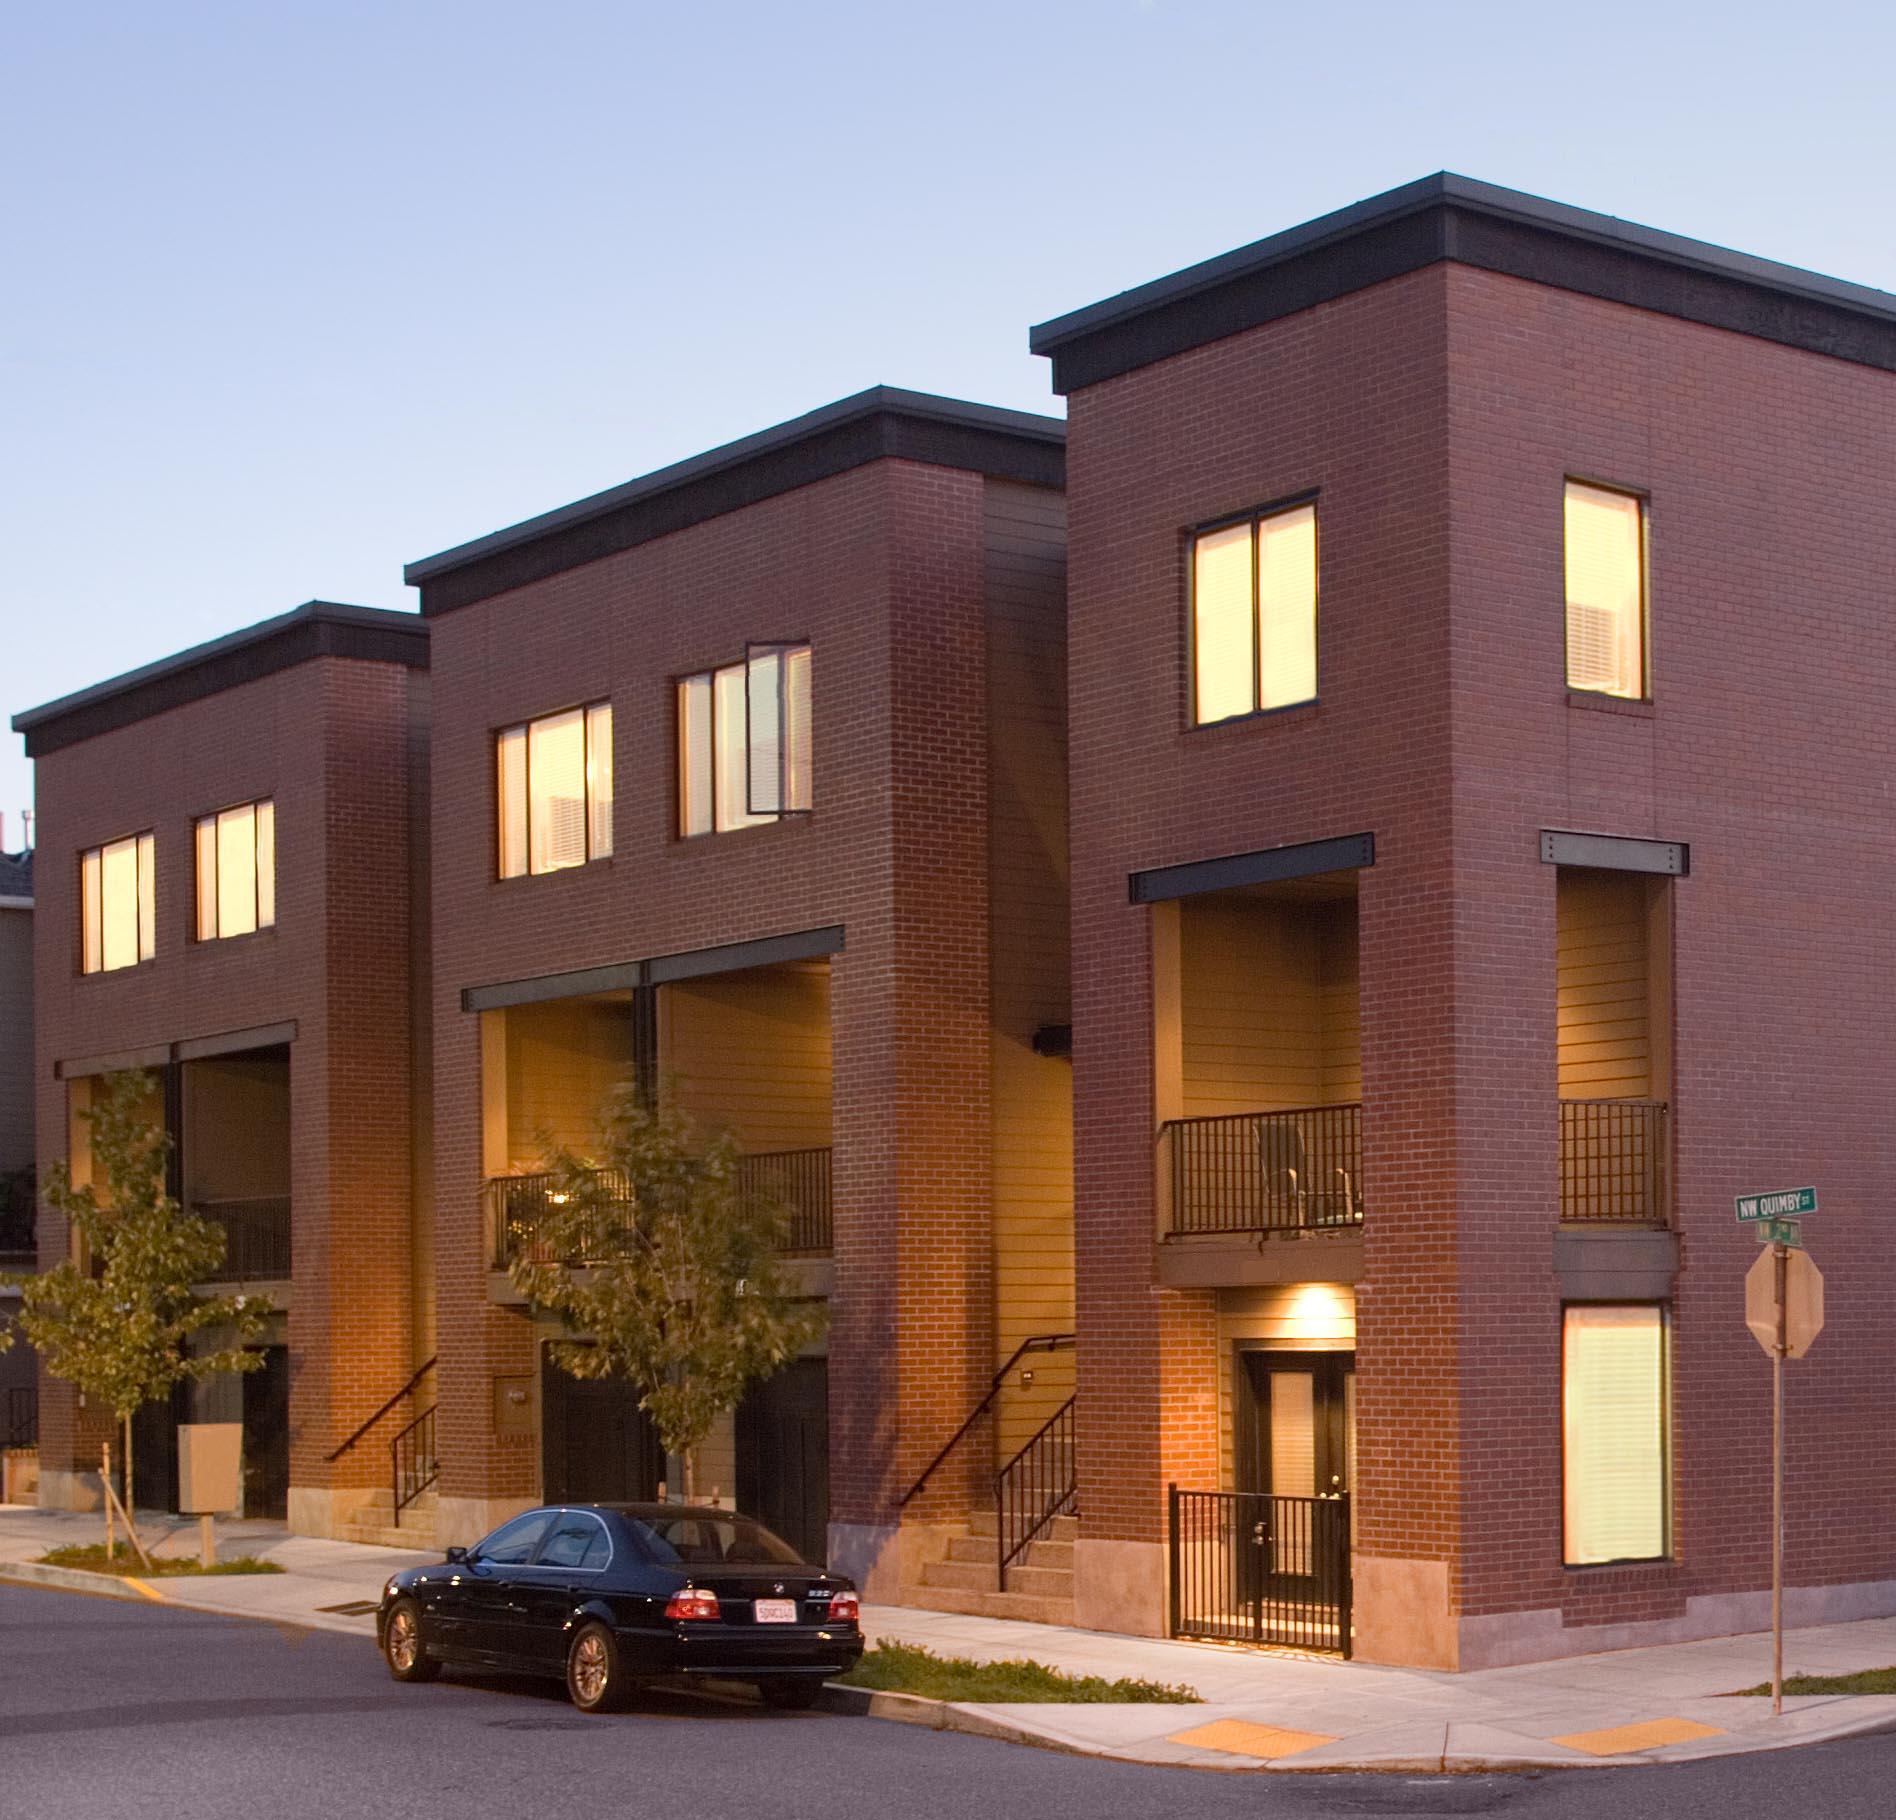 QUIMBY TOWNHOMES | PORTLAND, OR